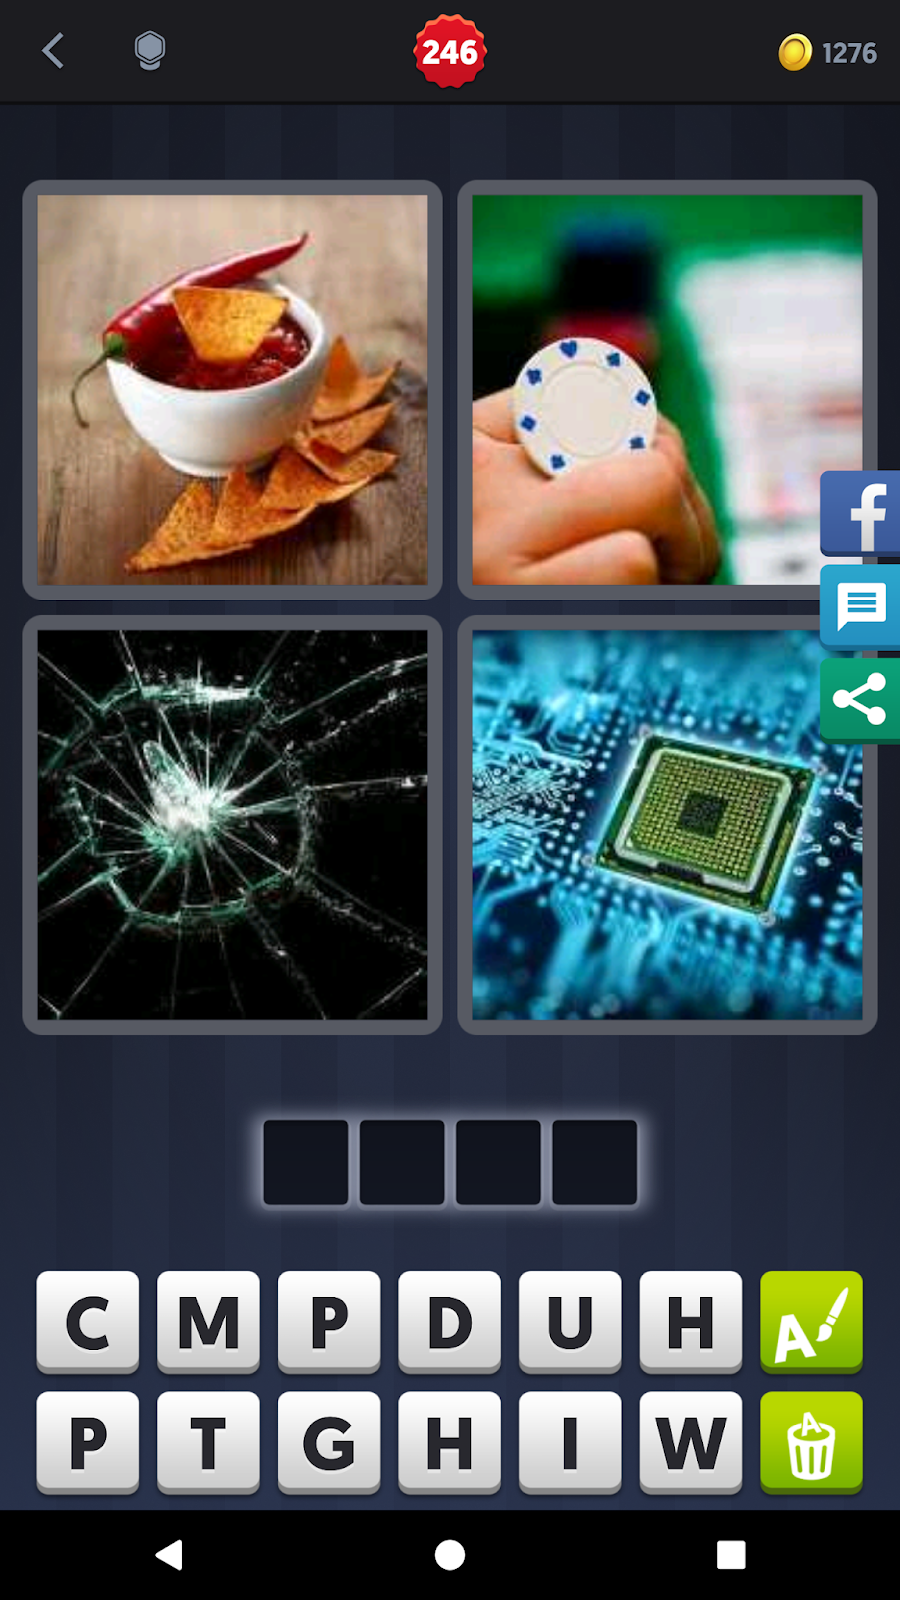 4 Pics 1 Word Answers Solutions Level 246 Chip